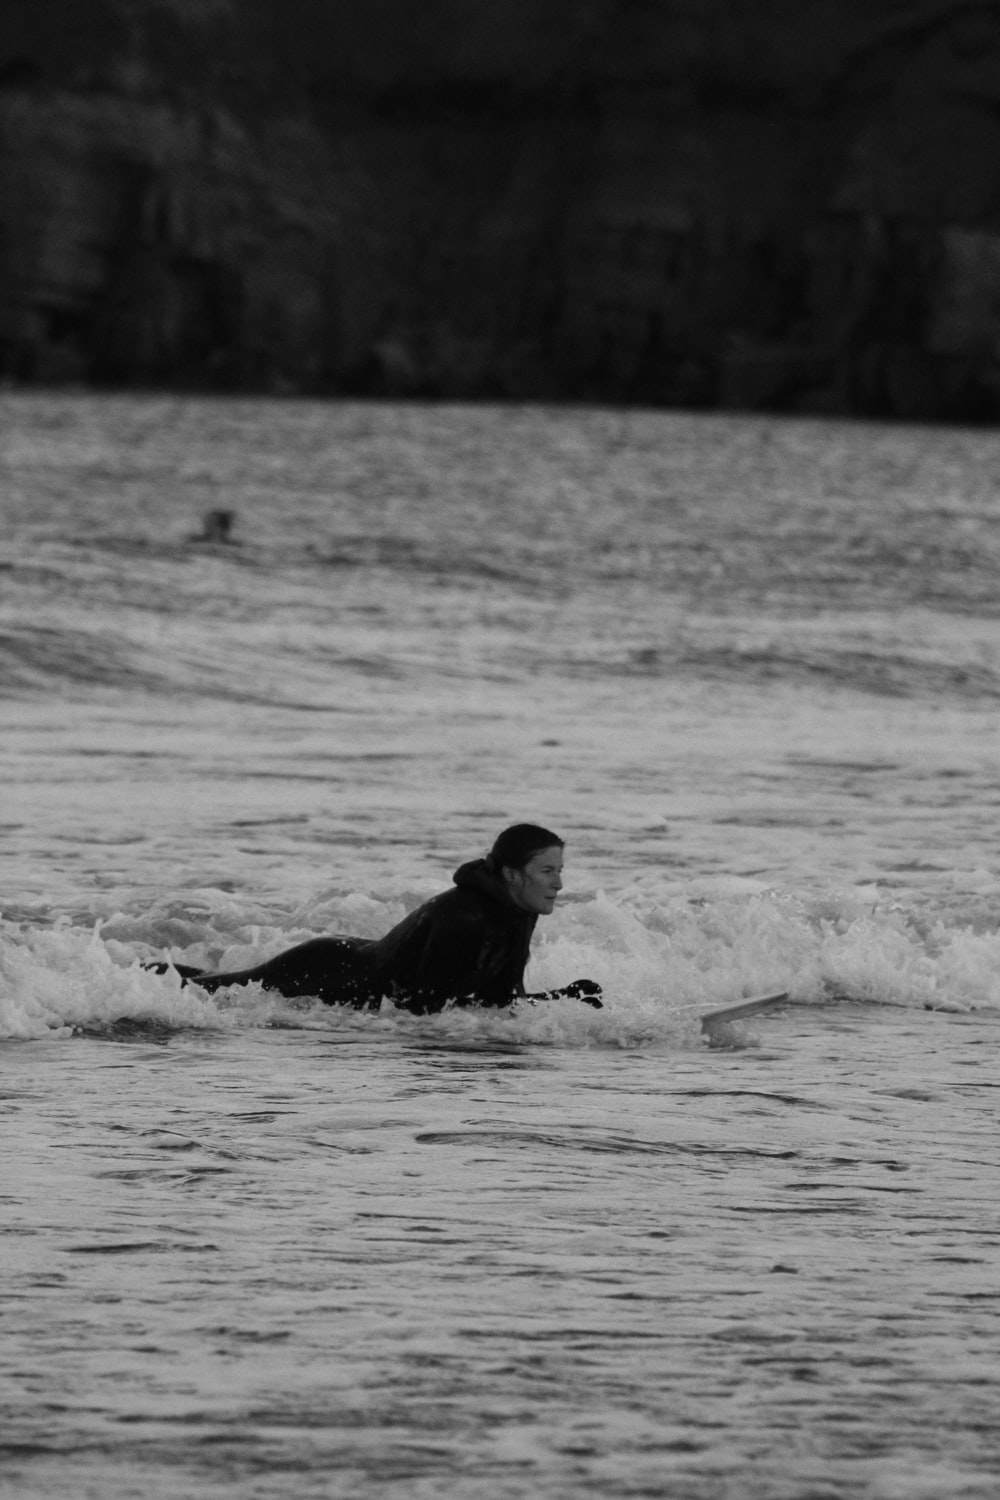 man in black wet suit lying on water during daytime